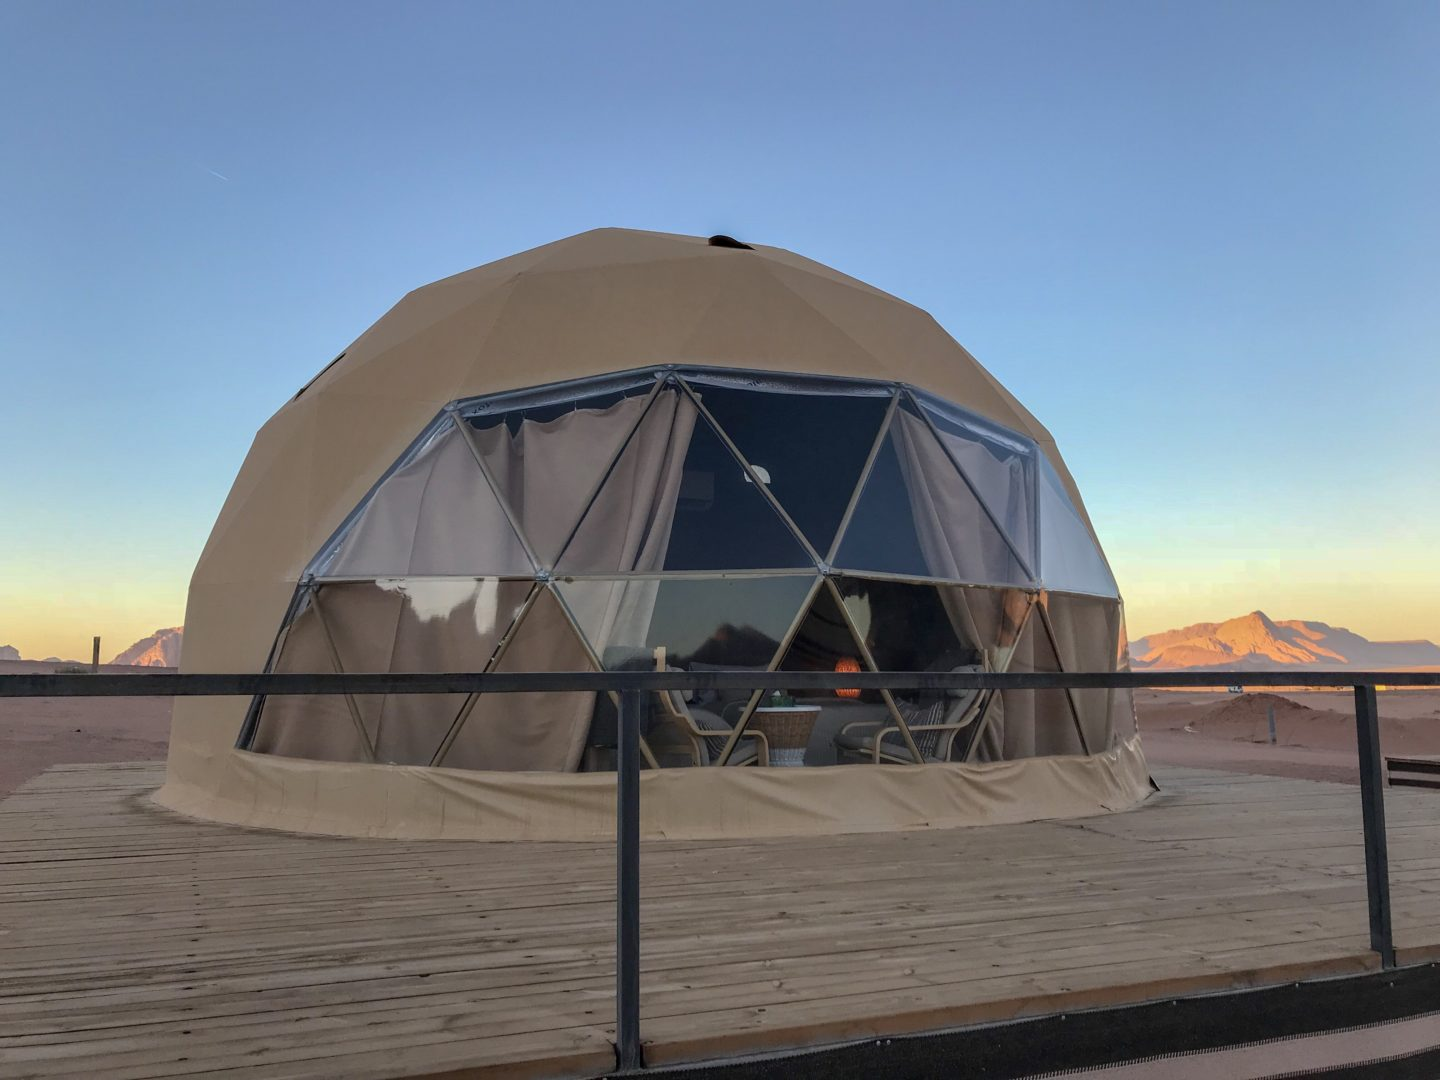 Big domed tent structure